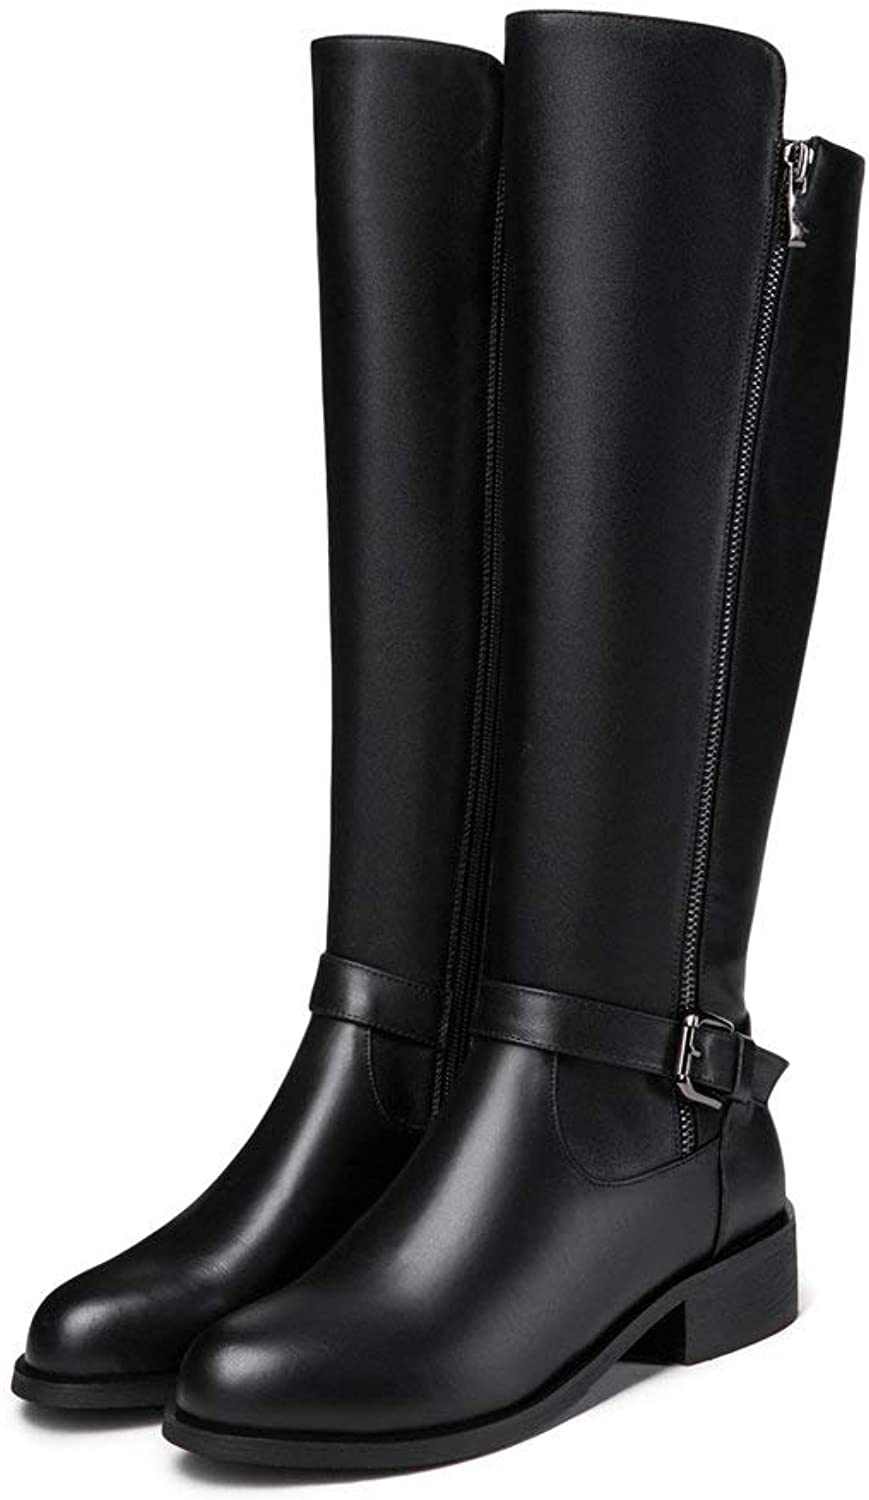 Fashion Knee High Riding Boot Women Side Zipper Buckle Strappy Genuine Leather Flat Black Western Combat Boot Winter